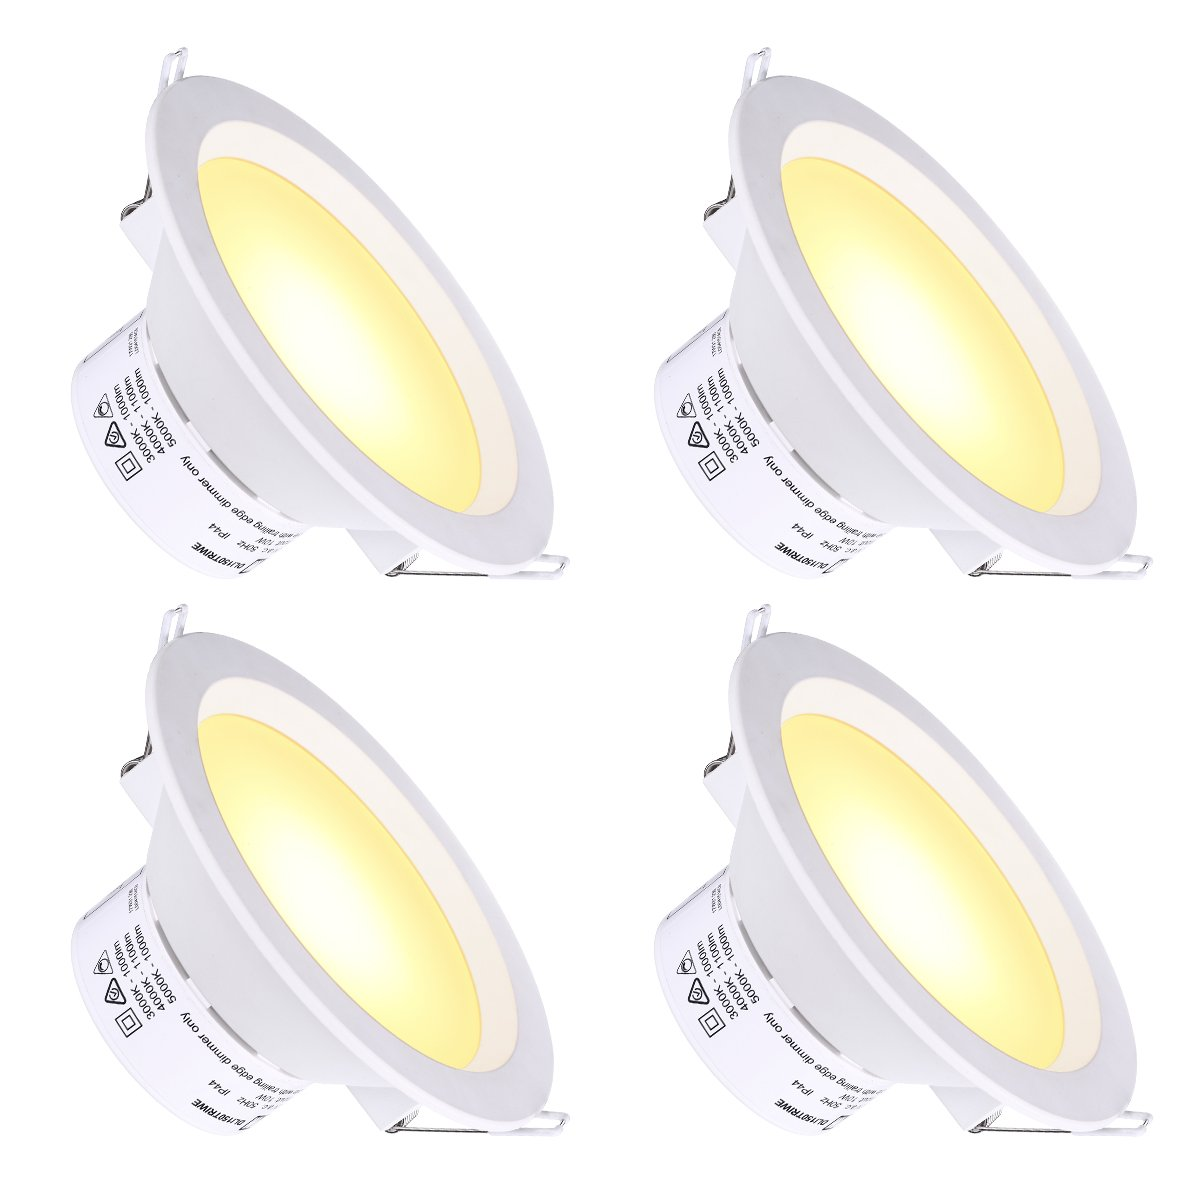 6'' LED Recessed Light with J-Box Adjustable Color Temp 10W Non-Dimmable LED Downlight for 100W Replacement, 1100 Lumens, 3000K/4000K/5000K, AC Power Plug, IC-Rated and Air Tight - Pack of 4